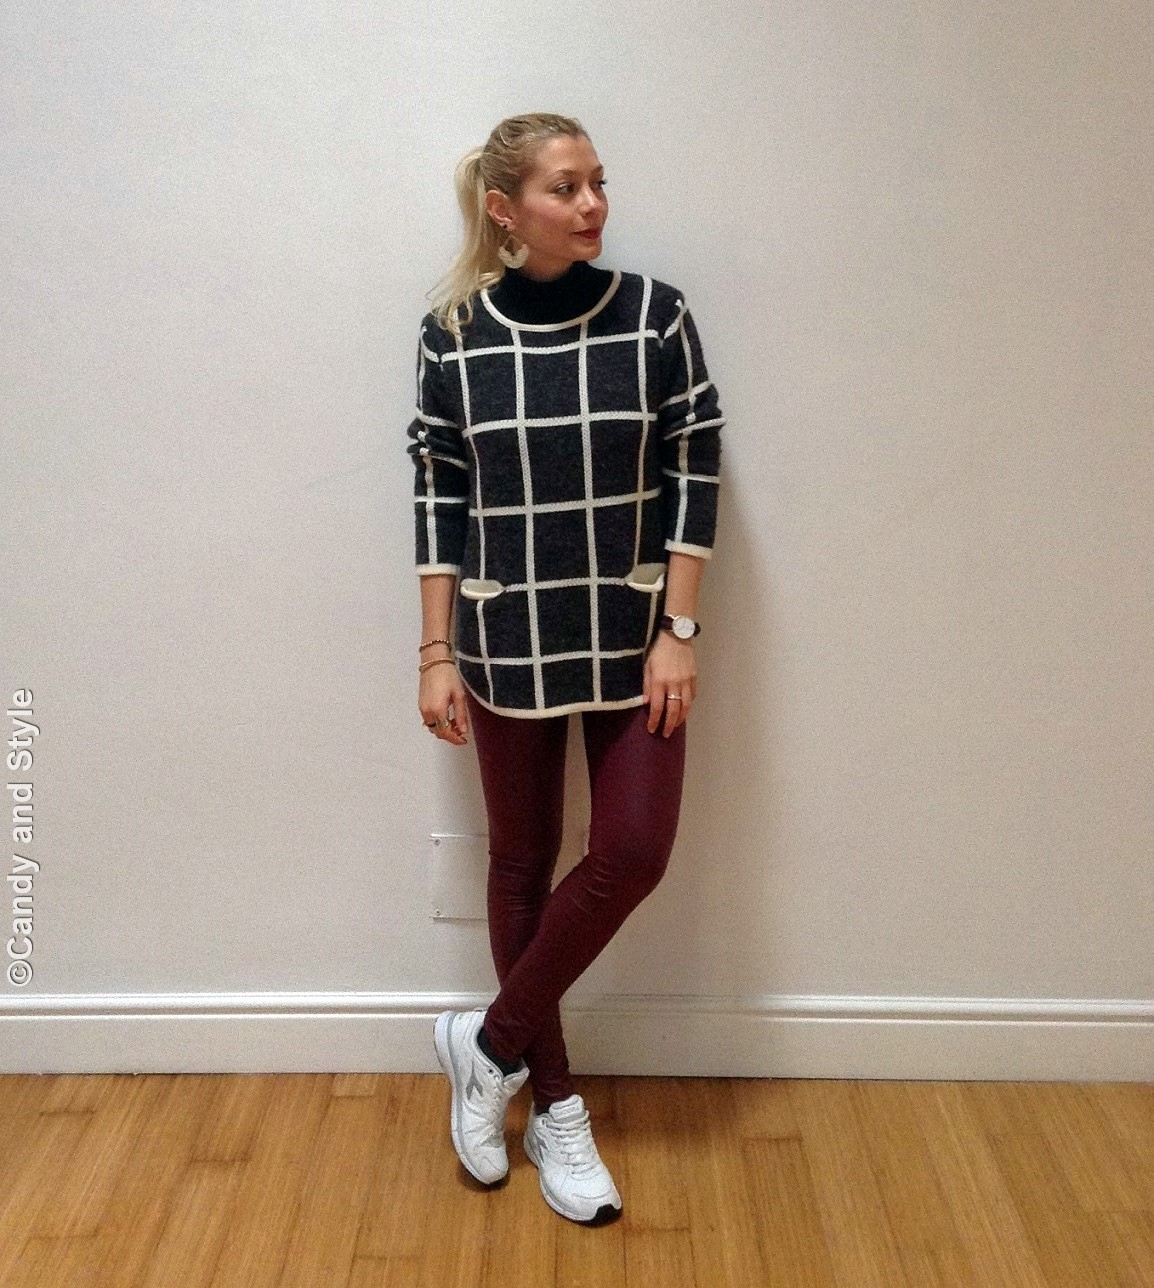 CheckedSweater+BurgundyLeggings+WhiteTrainers+HighPonytail+BerryLips - Lilli Candy and Style Fashion Blog